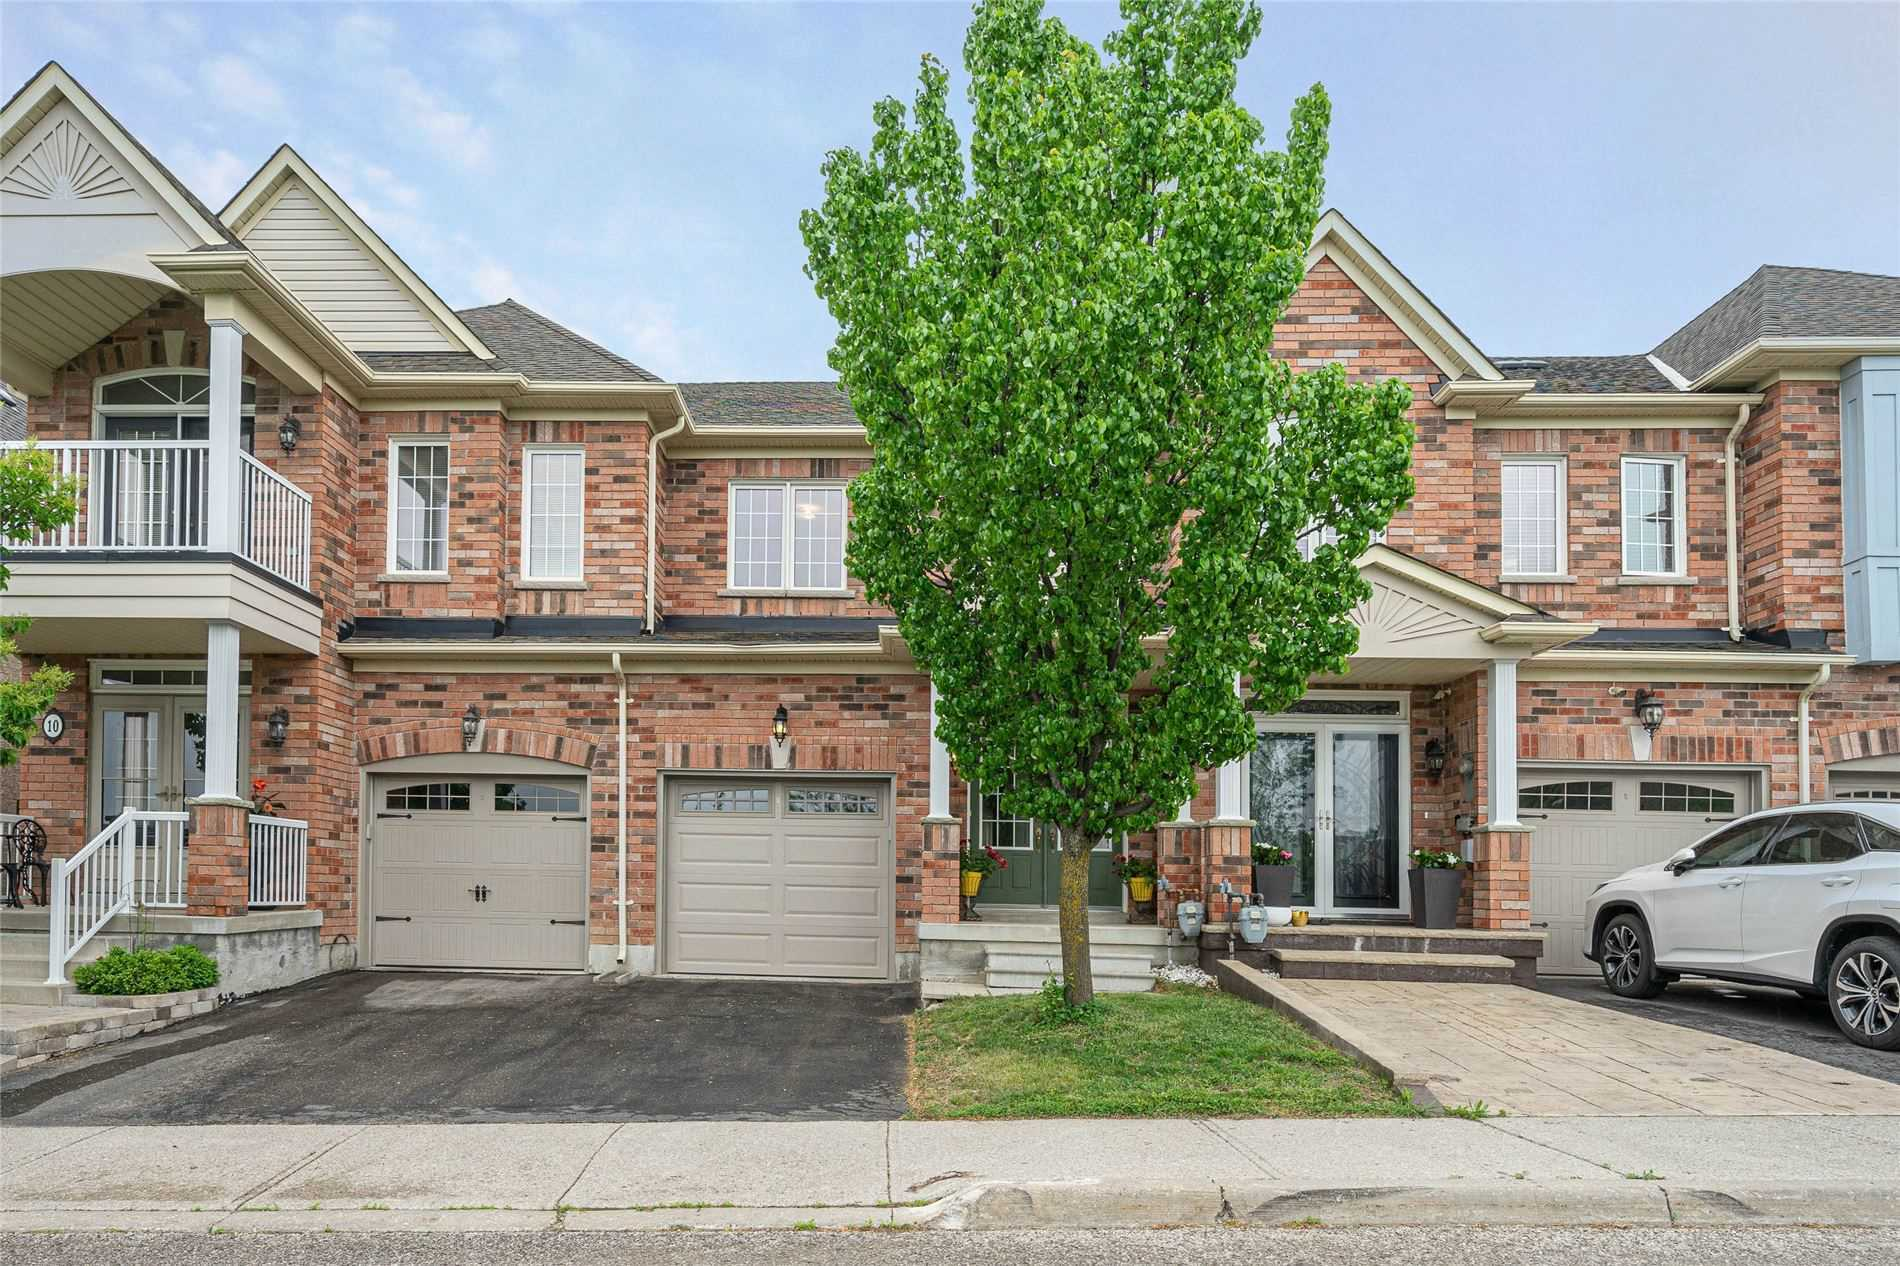 pictures of house for sale MLS: N5251362 located at 320 Ravineview Dr, Vaughan L6A4H1